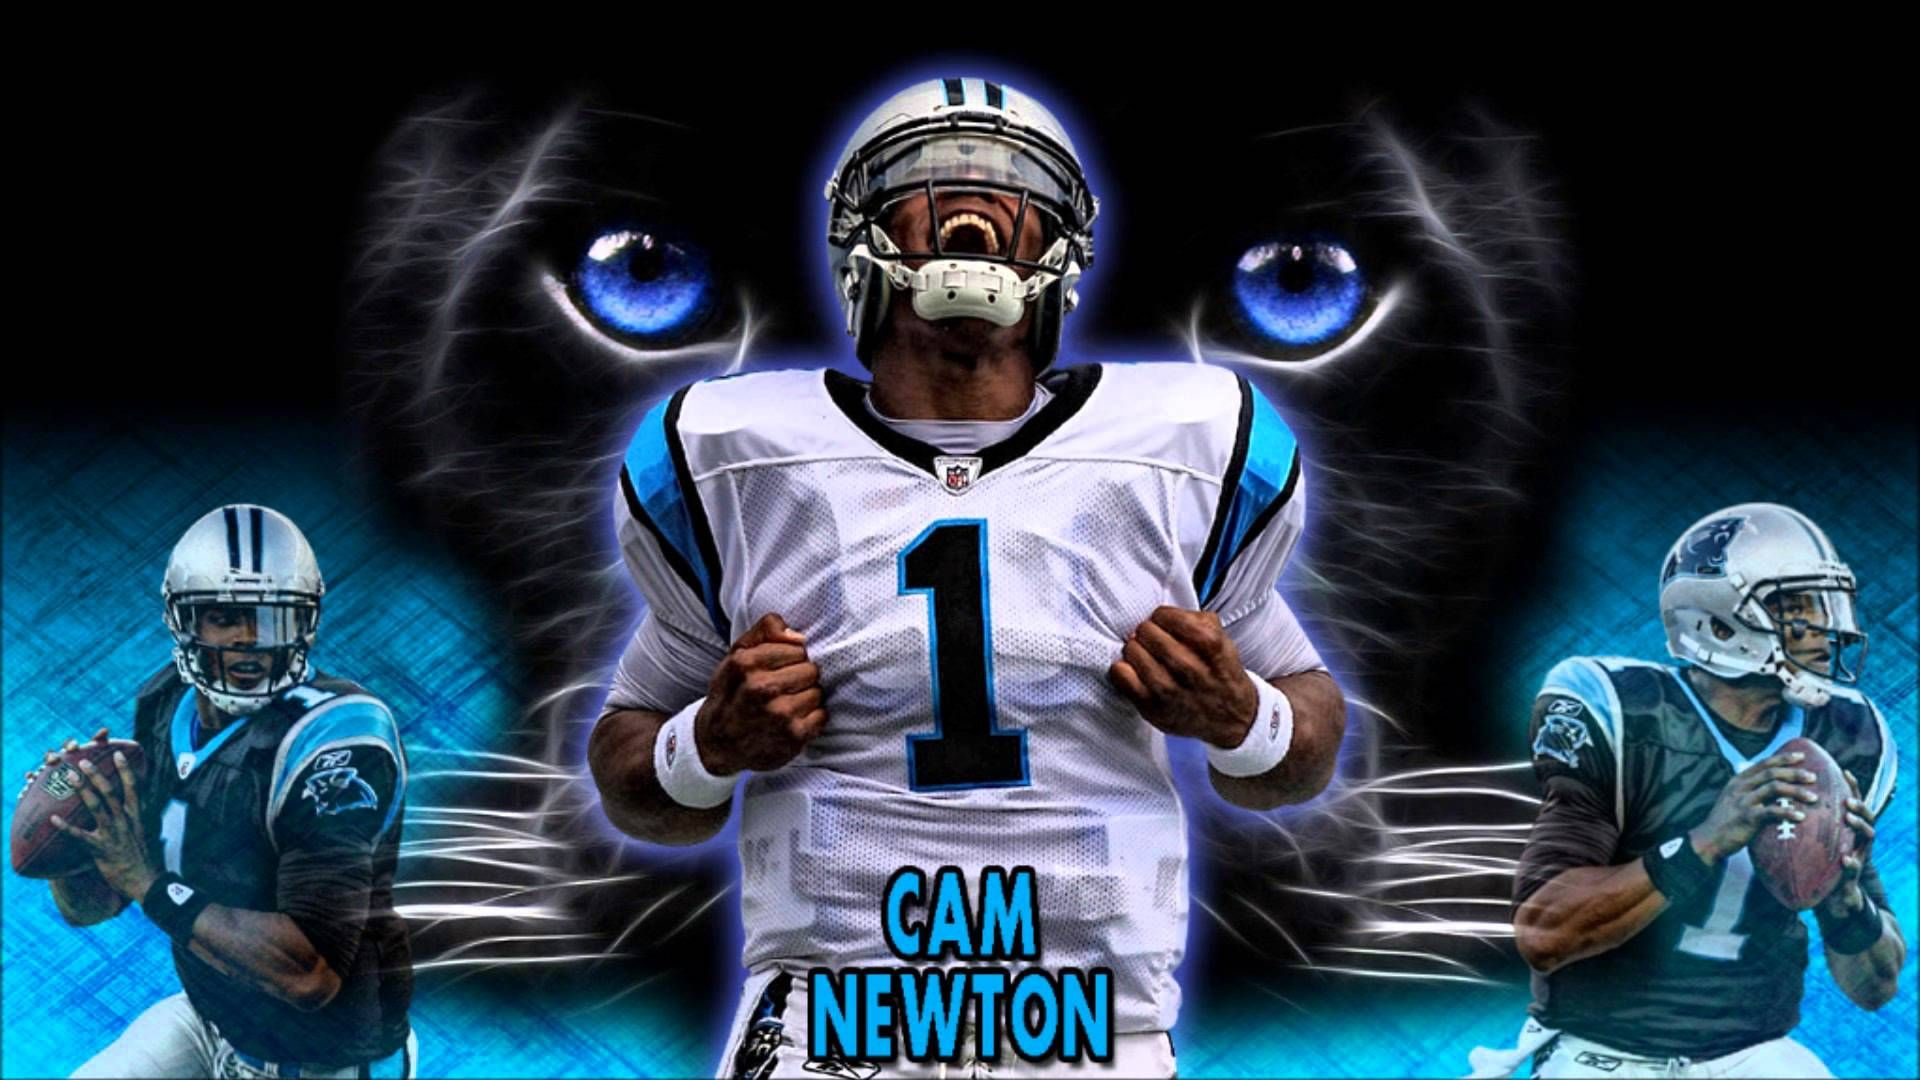 Related image Nfl football wallpaper, Carolina panthers